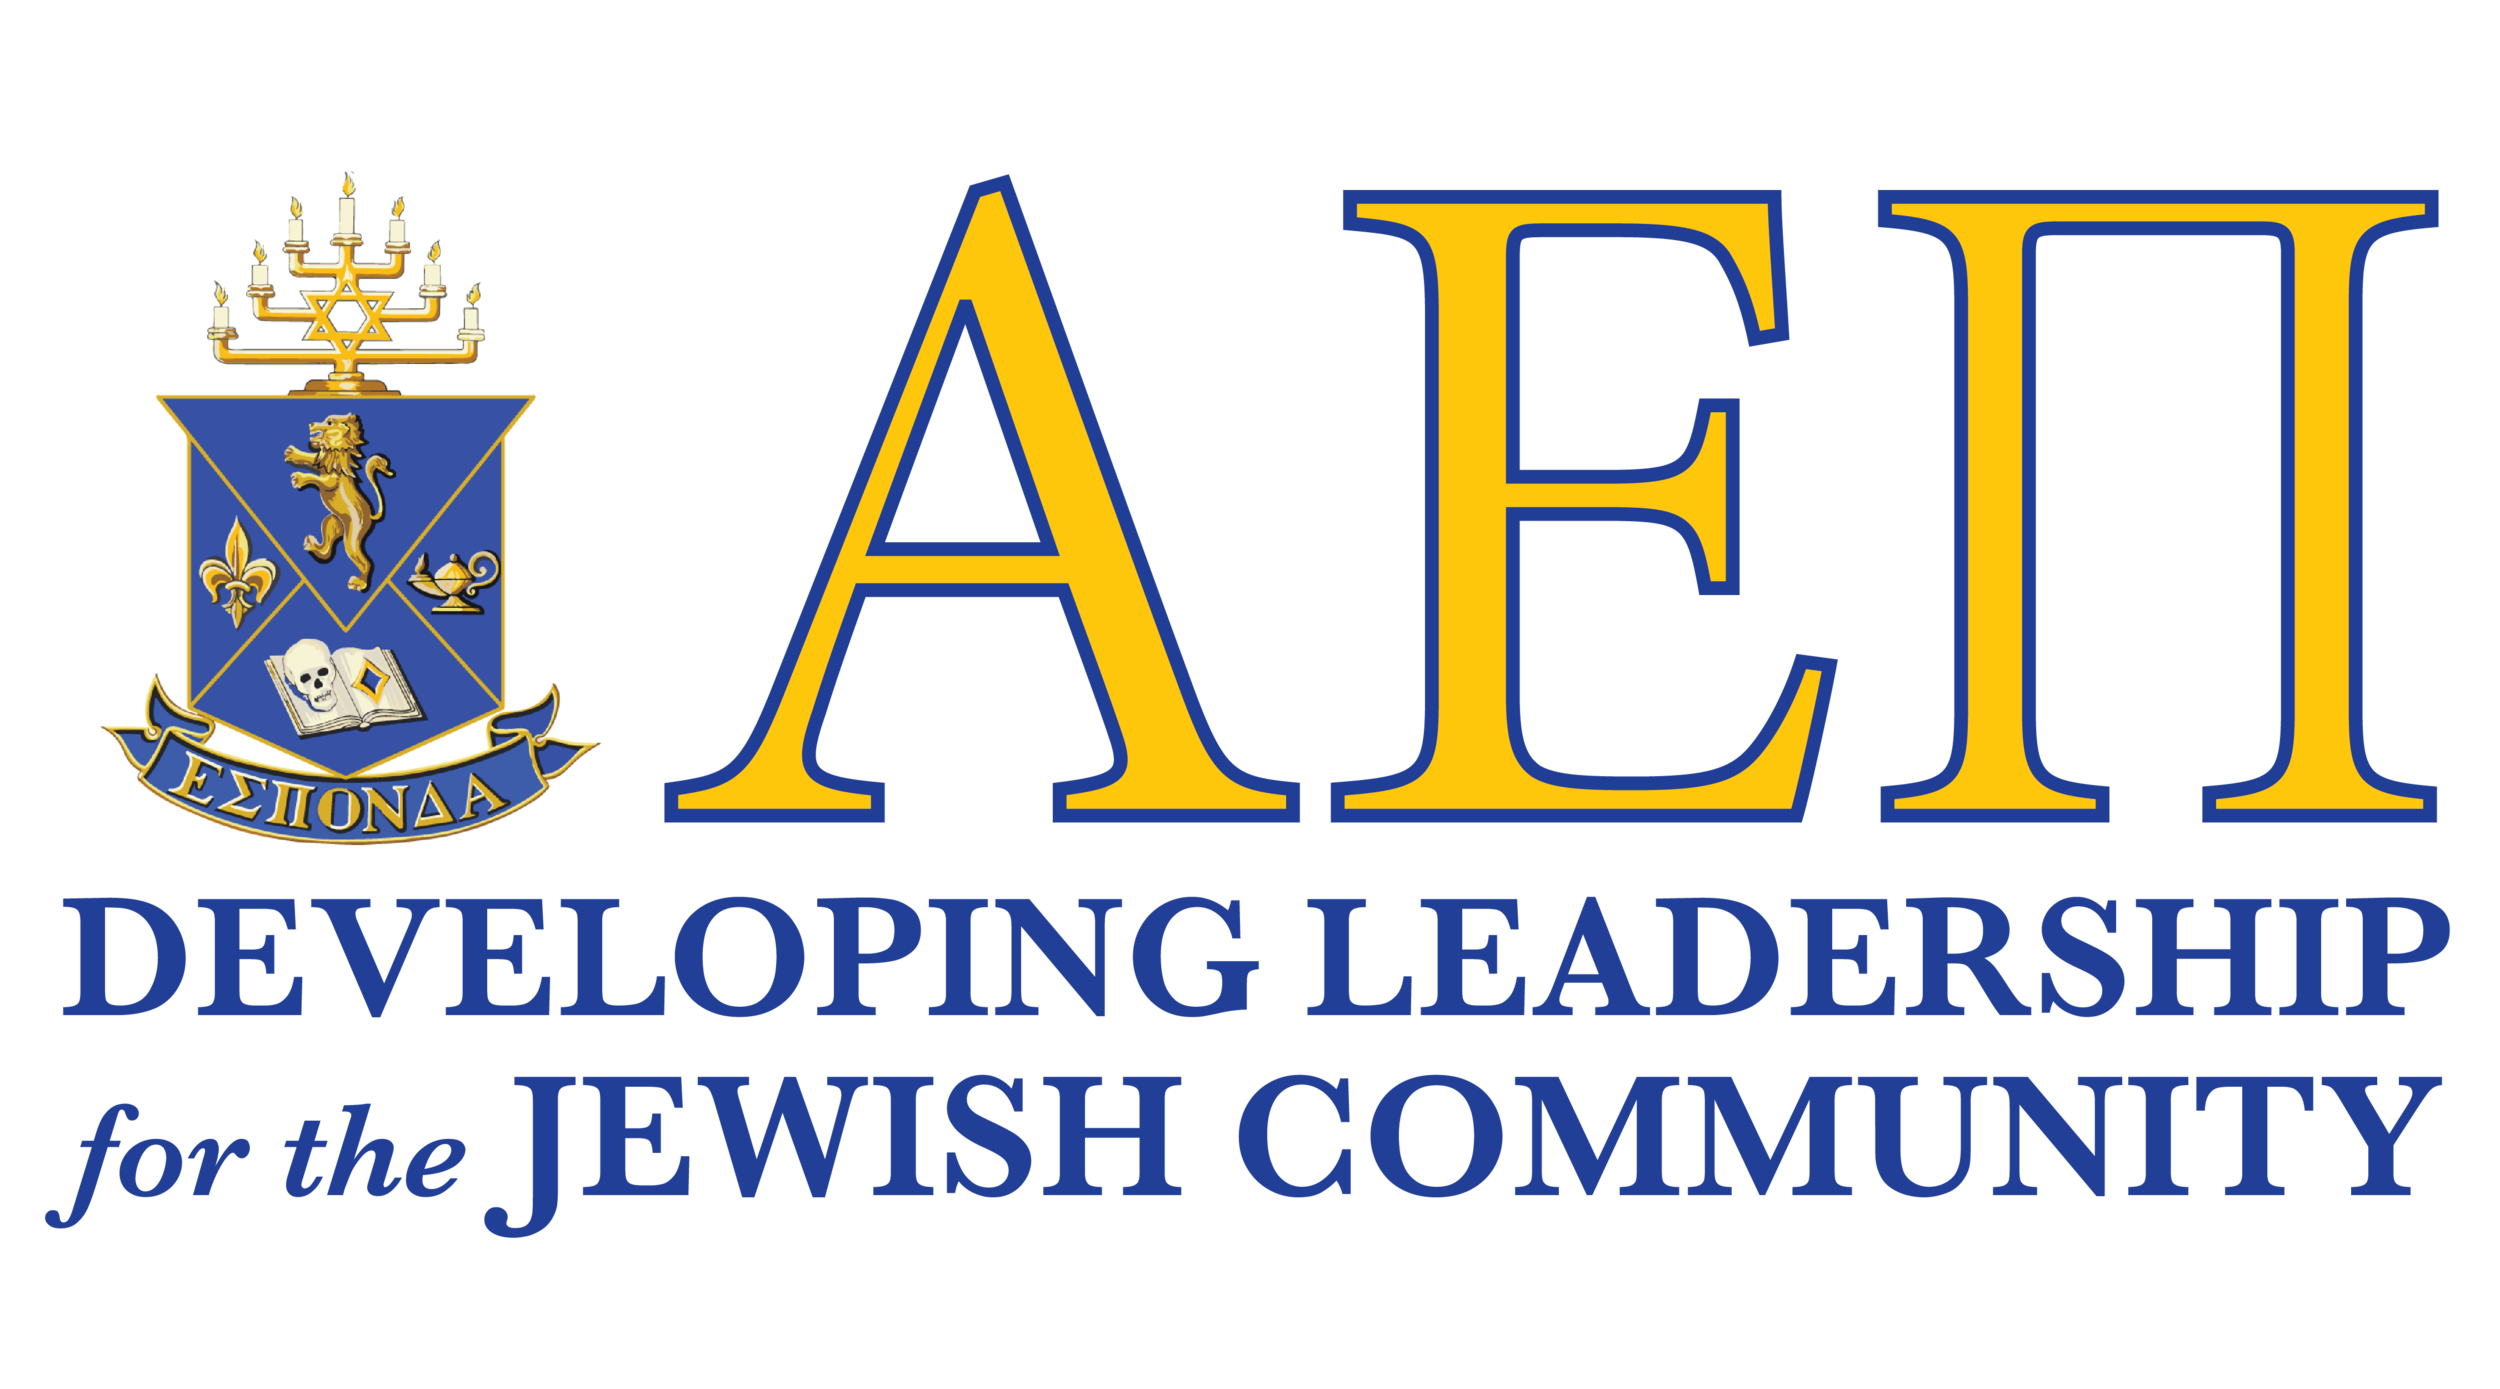 2019 AEPi Corporate Logo with Mission.jpg